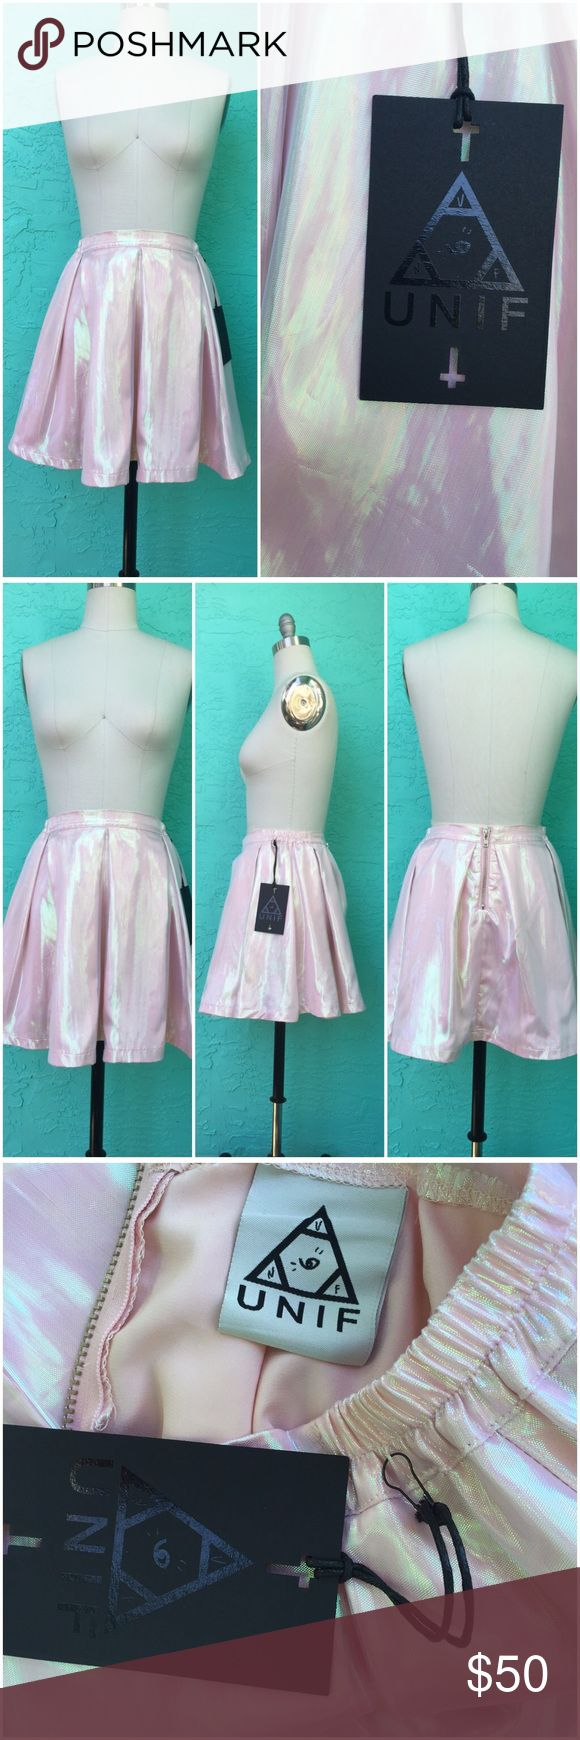 """UNIF Cheerleader Mini Skirt NWT. Beautiful pastel pink with an iridescent sheen to it. Waist band has elastic on sides and there is an exposed zipper in back. 100% polyester fabric with a poly/spandex lining . *Please note this is a size Large (I close-pinned it to fit the size 8 dress form) Measurements: (taken while laying flat so double for waist and hips) Waist: 15""""-16"""" Hips: 22"""" Length: 17.5"""" UNIF Skirts Mini"""